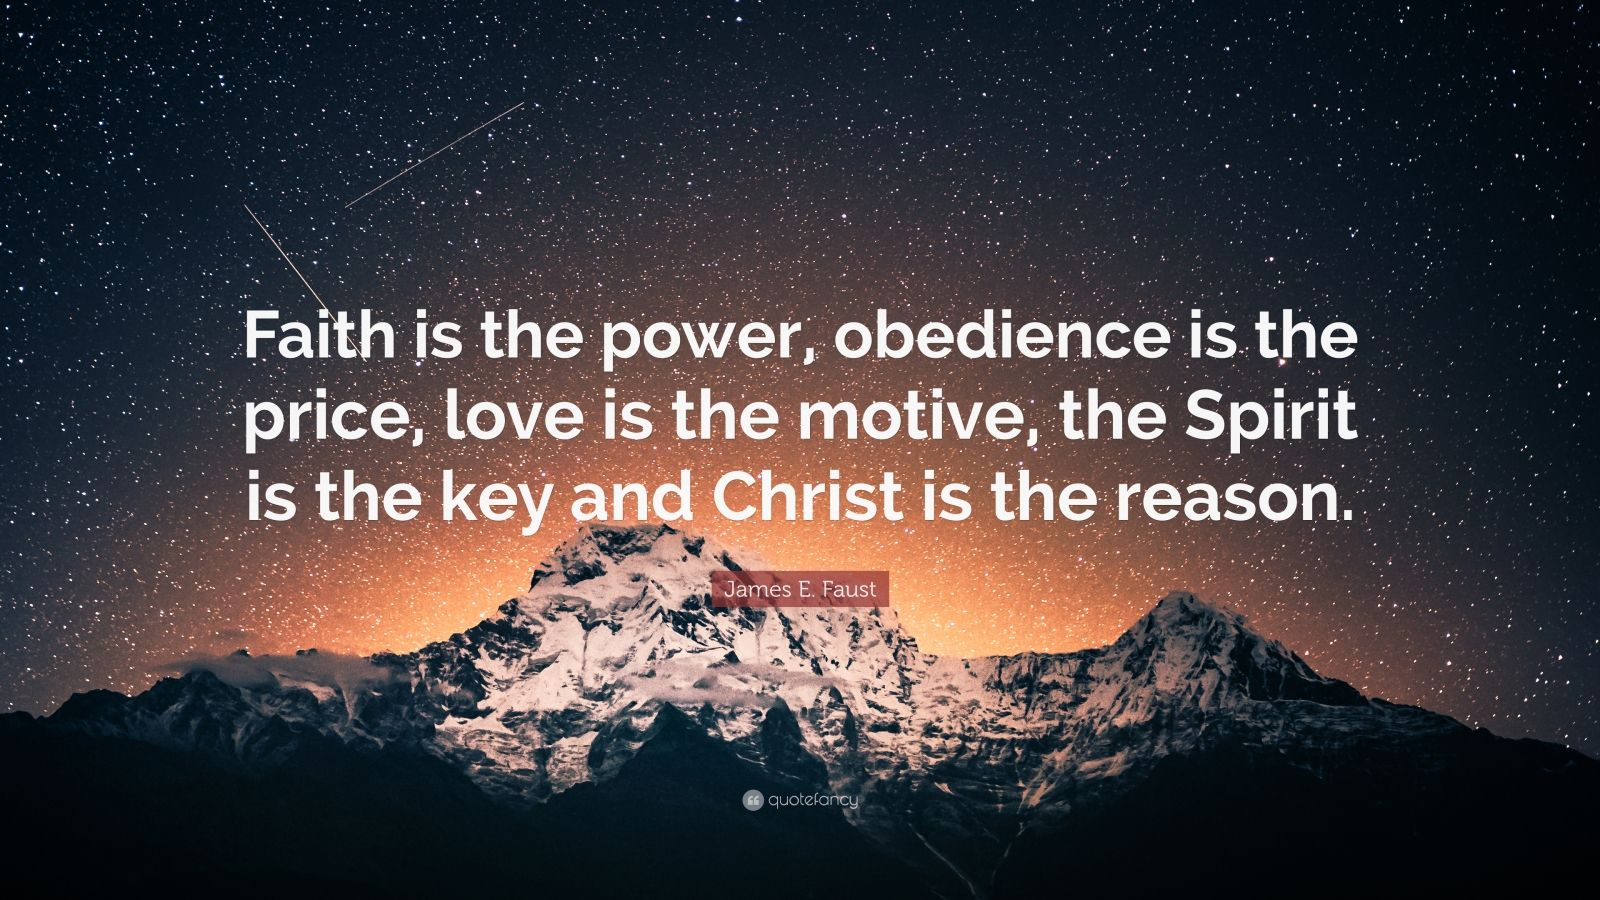 """James E. Faust Quote: """"Faith is the power, obedience is the price, love is the motive, the Spirit is the key and Christ is the reason."""""""